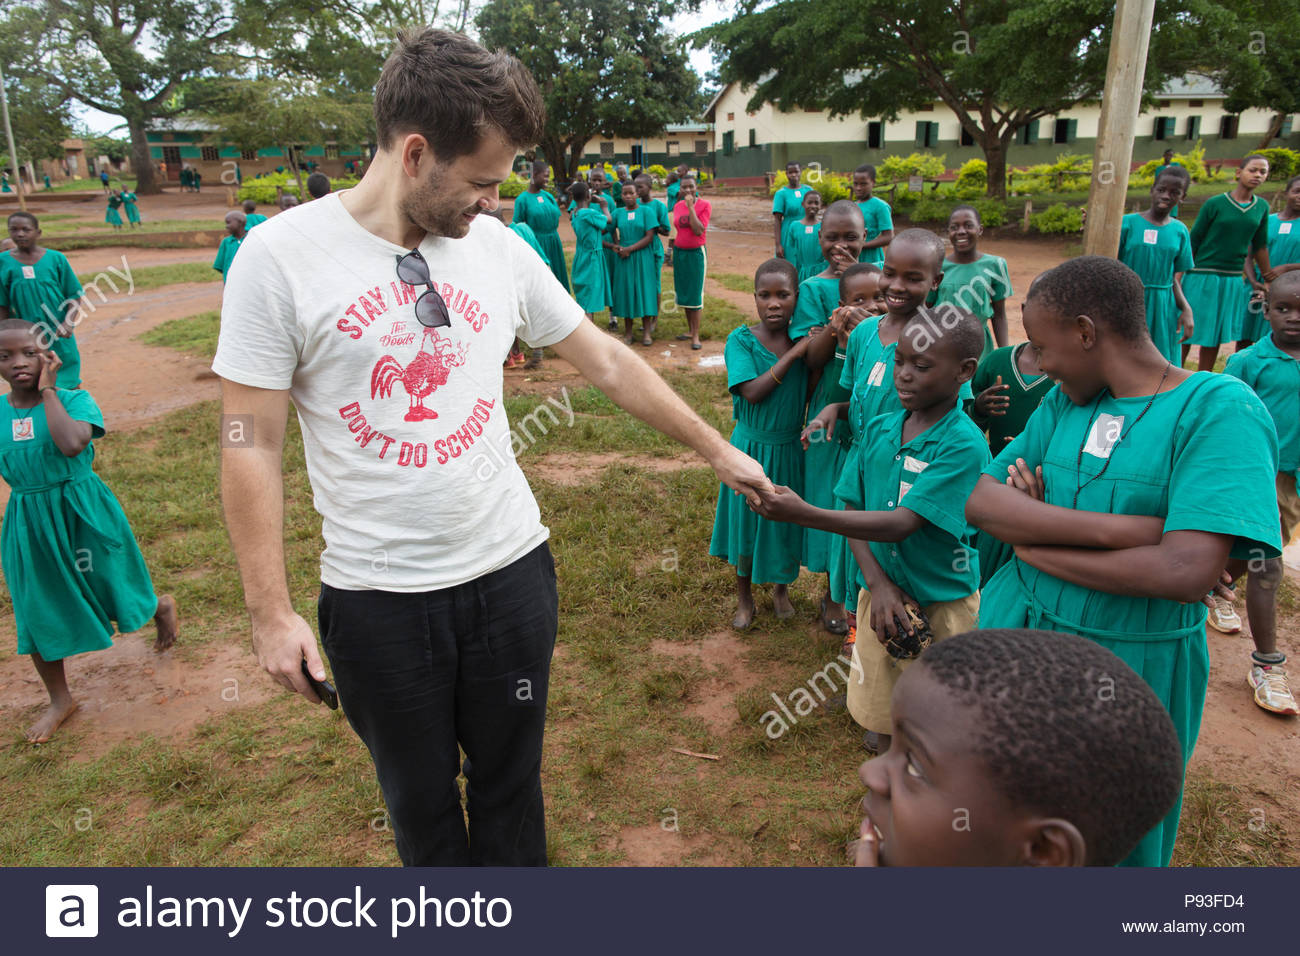 Bombo, Uganda - YouTuber Thilo Jung of Jung and Naiv is being watched by elementary school students at the St. Joseph's Bombo mixed primary school playground. - Stock Image